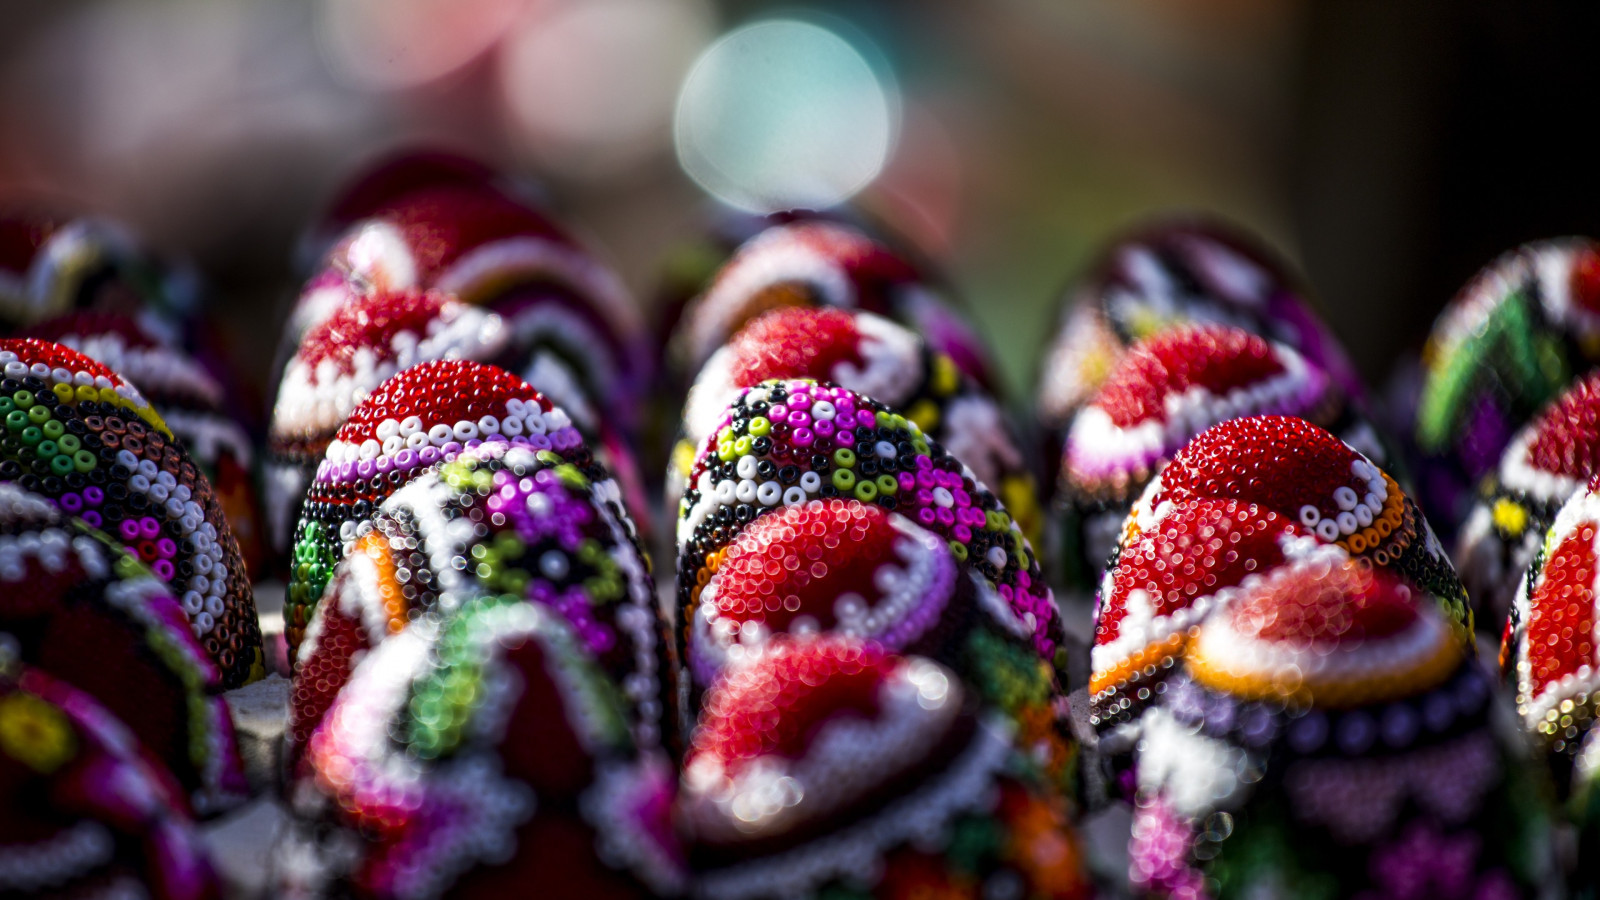 Easter eggs from Bucovina, Romania wallpaper 1600x900